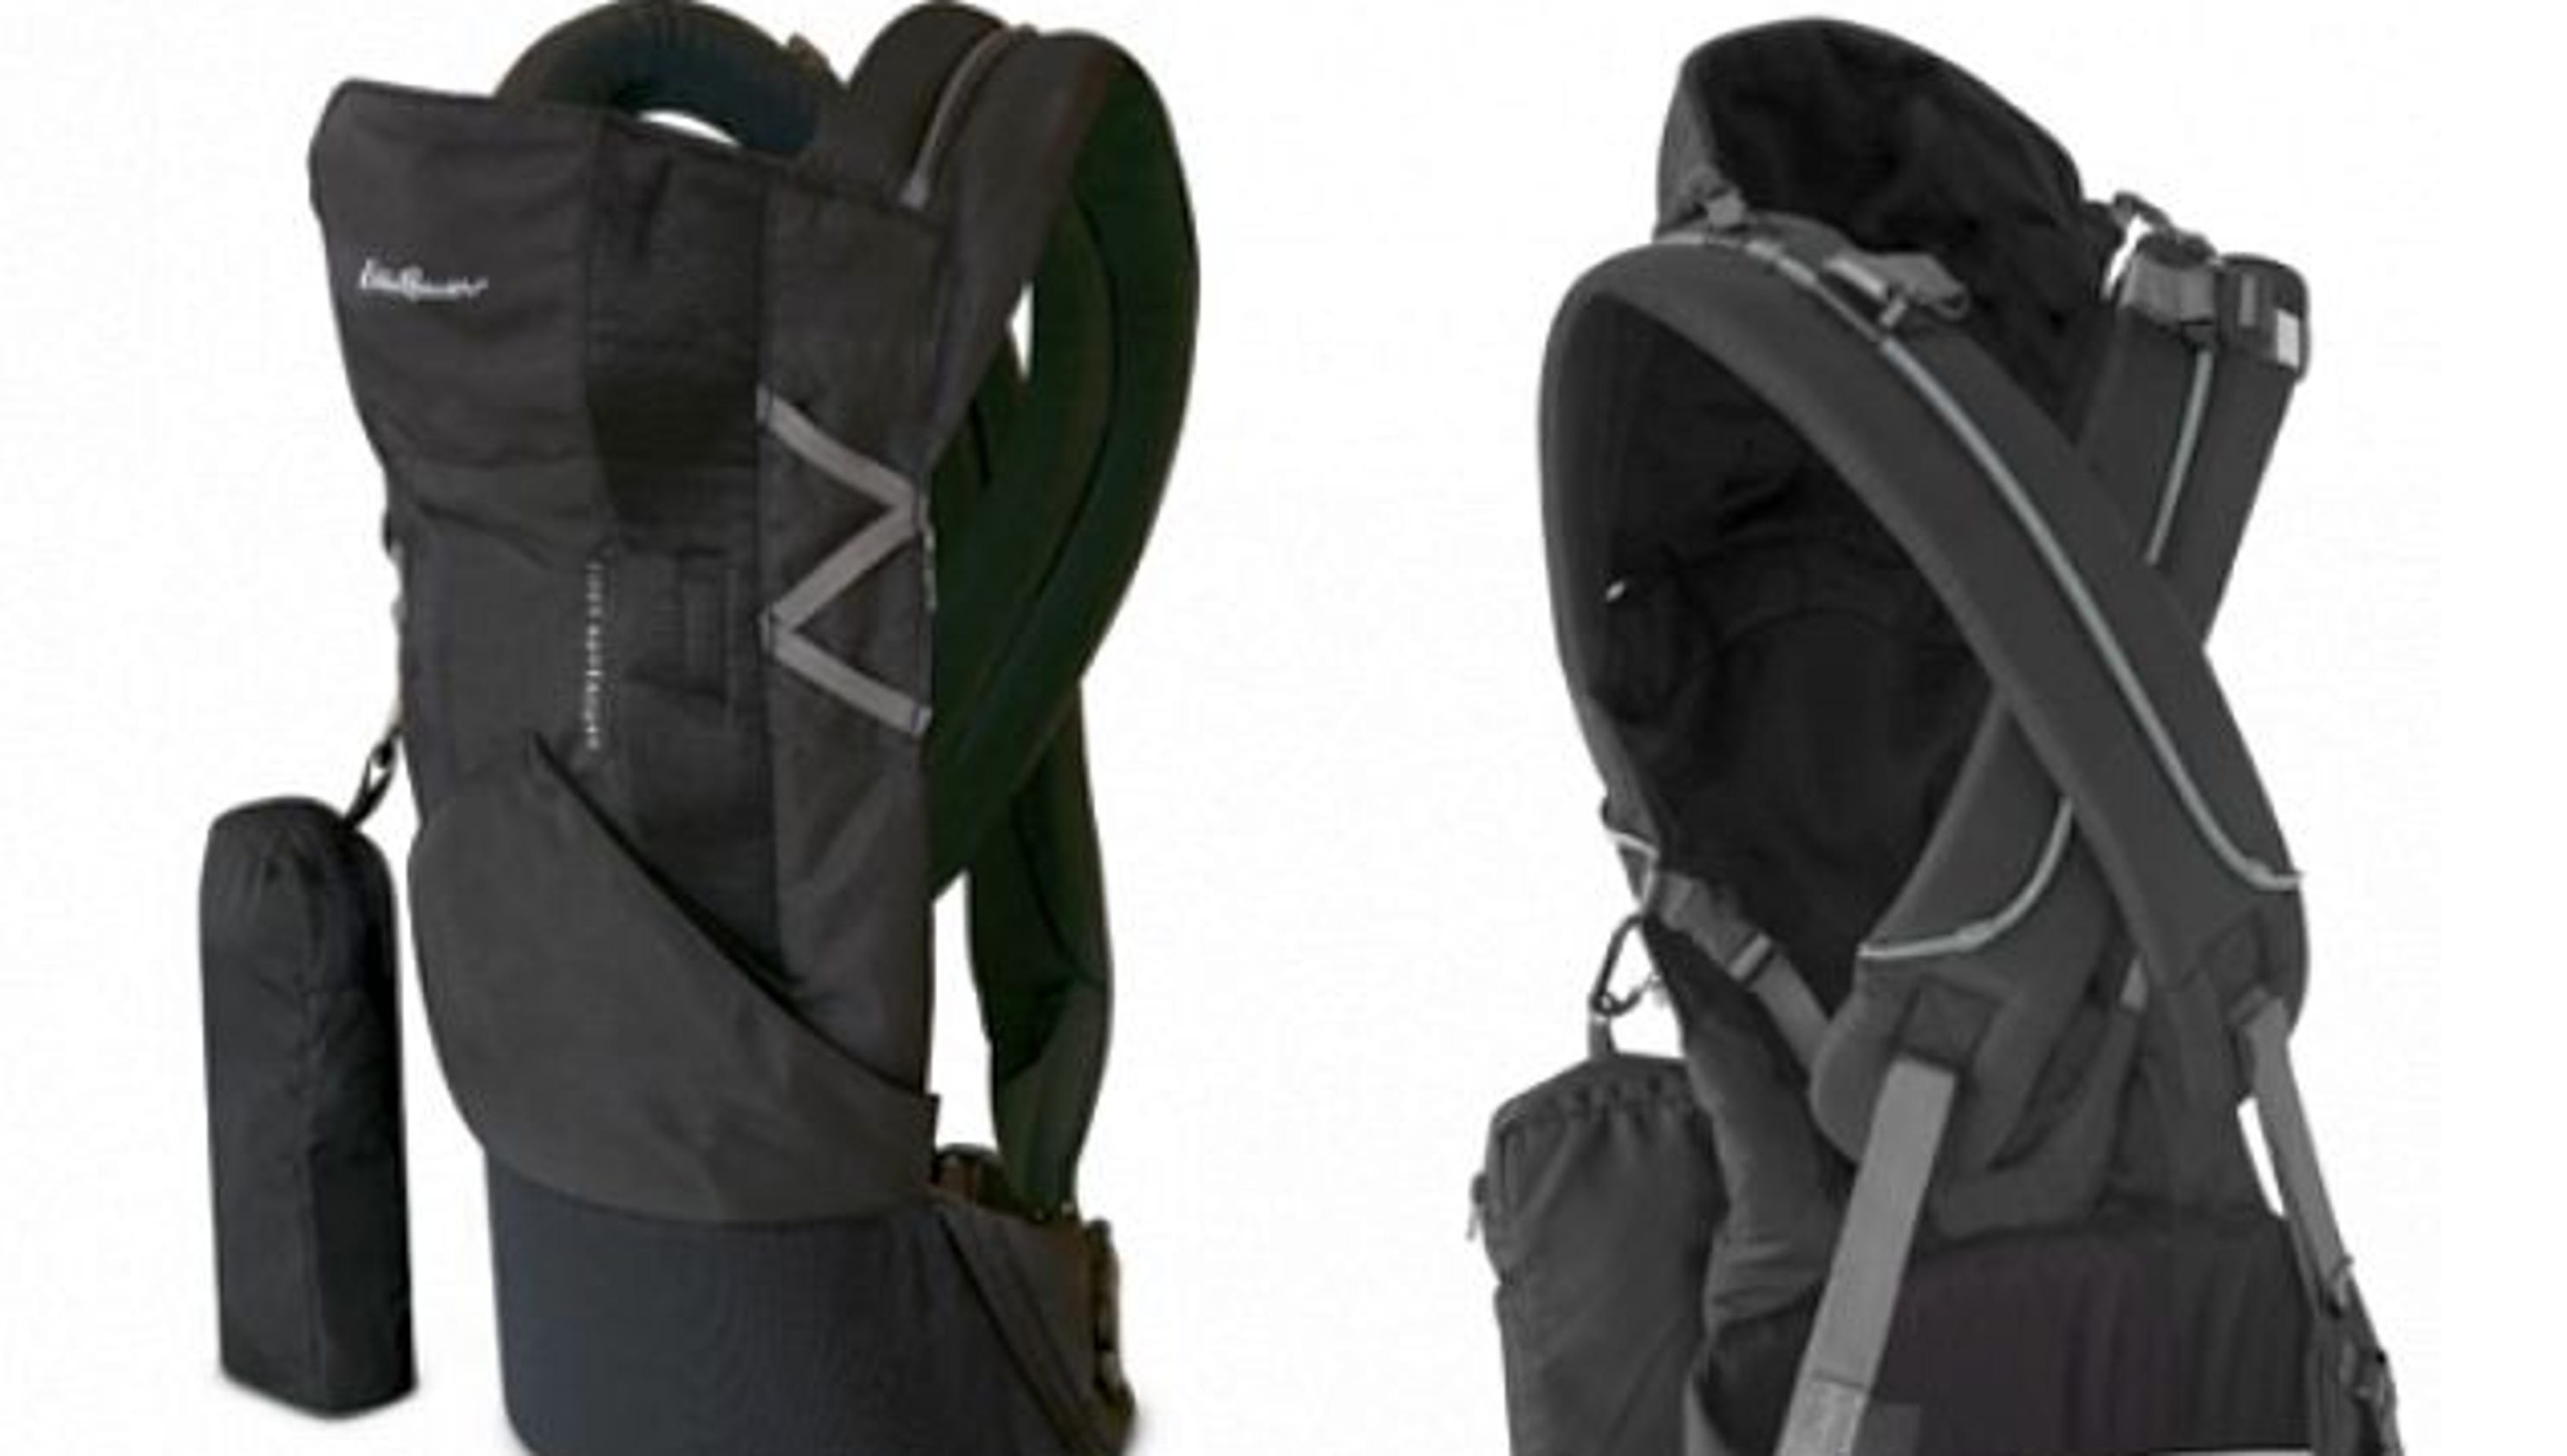 931ea378ce98 Baby carriers recalled from Target amid safety concerns